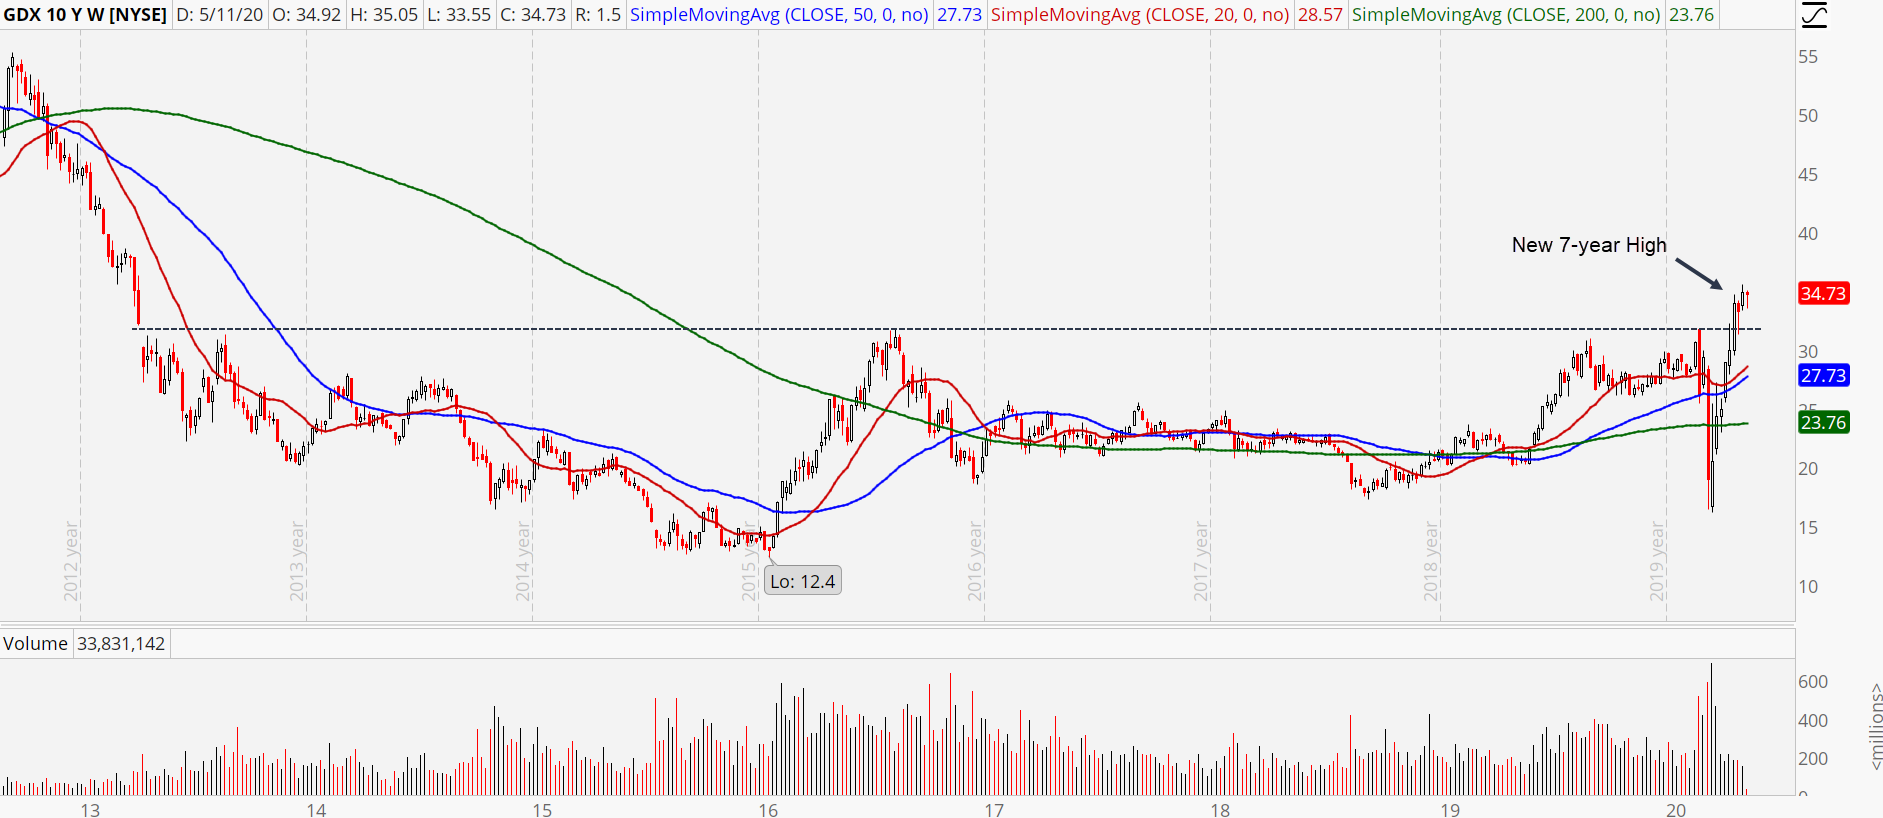 Gold stocks have Relative Strength